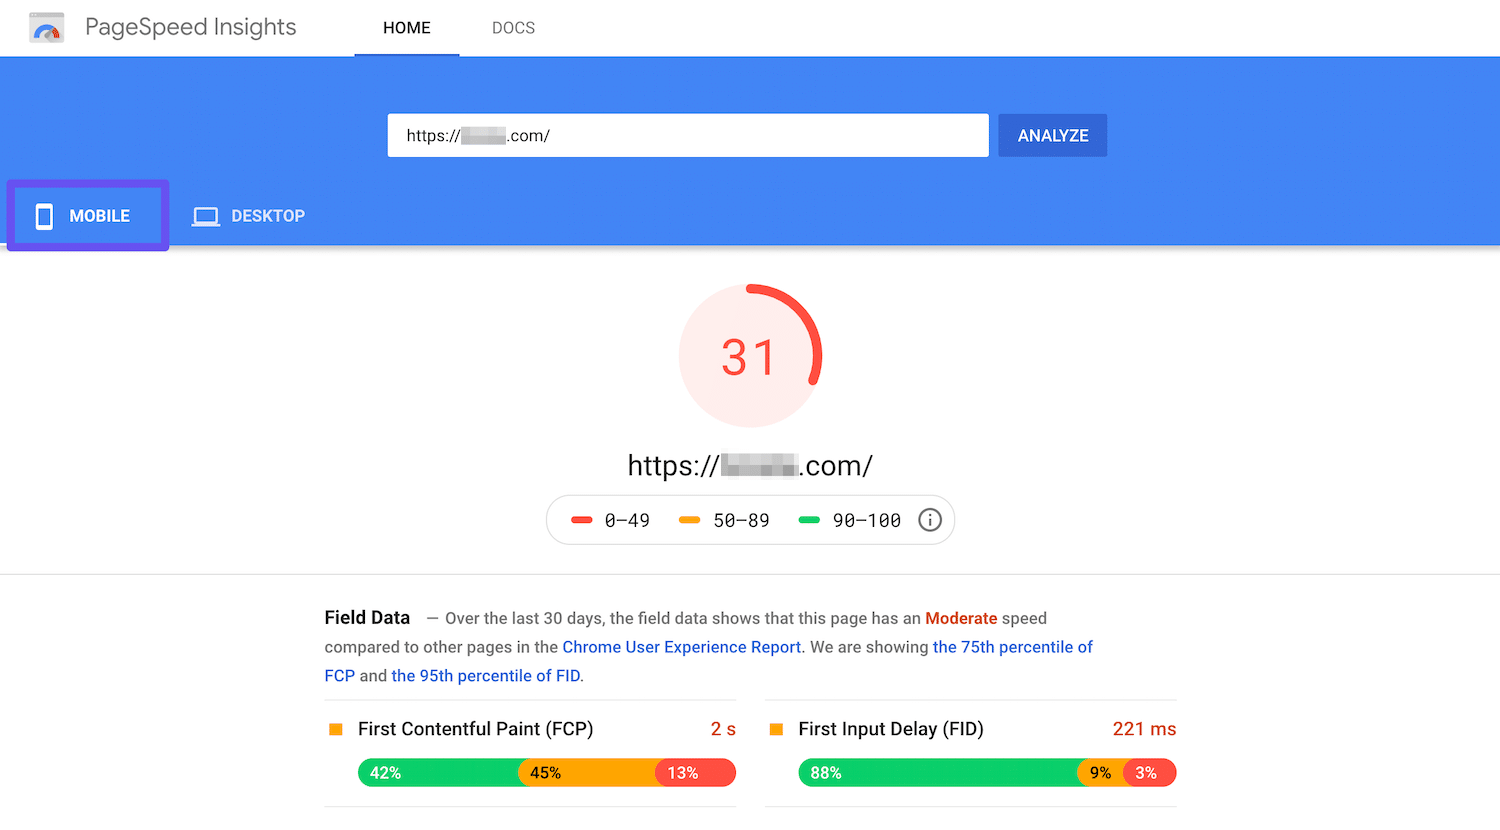 Onglet Mobile dans Google PageSpeed Insights